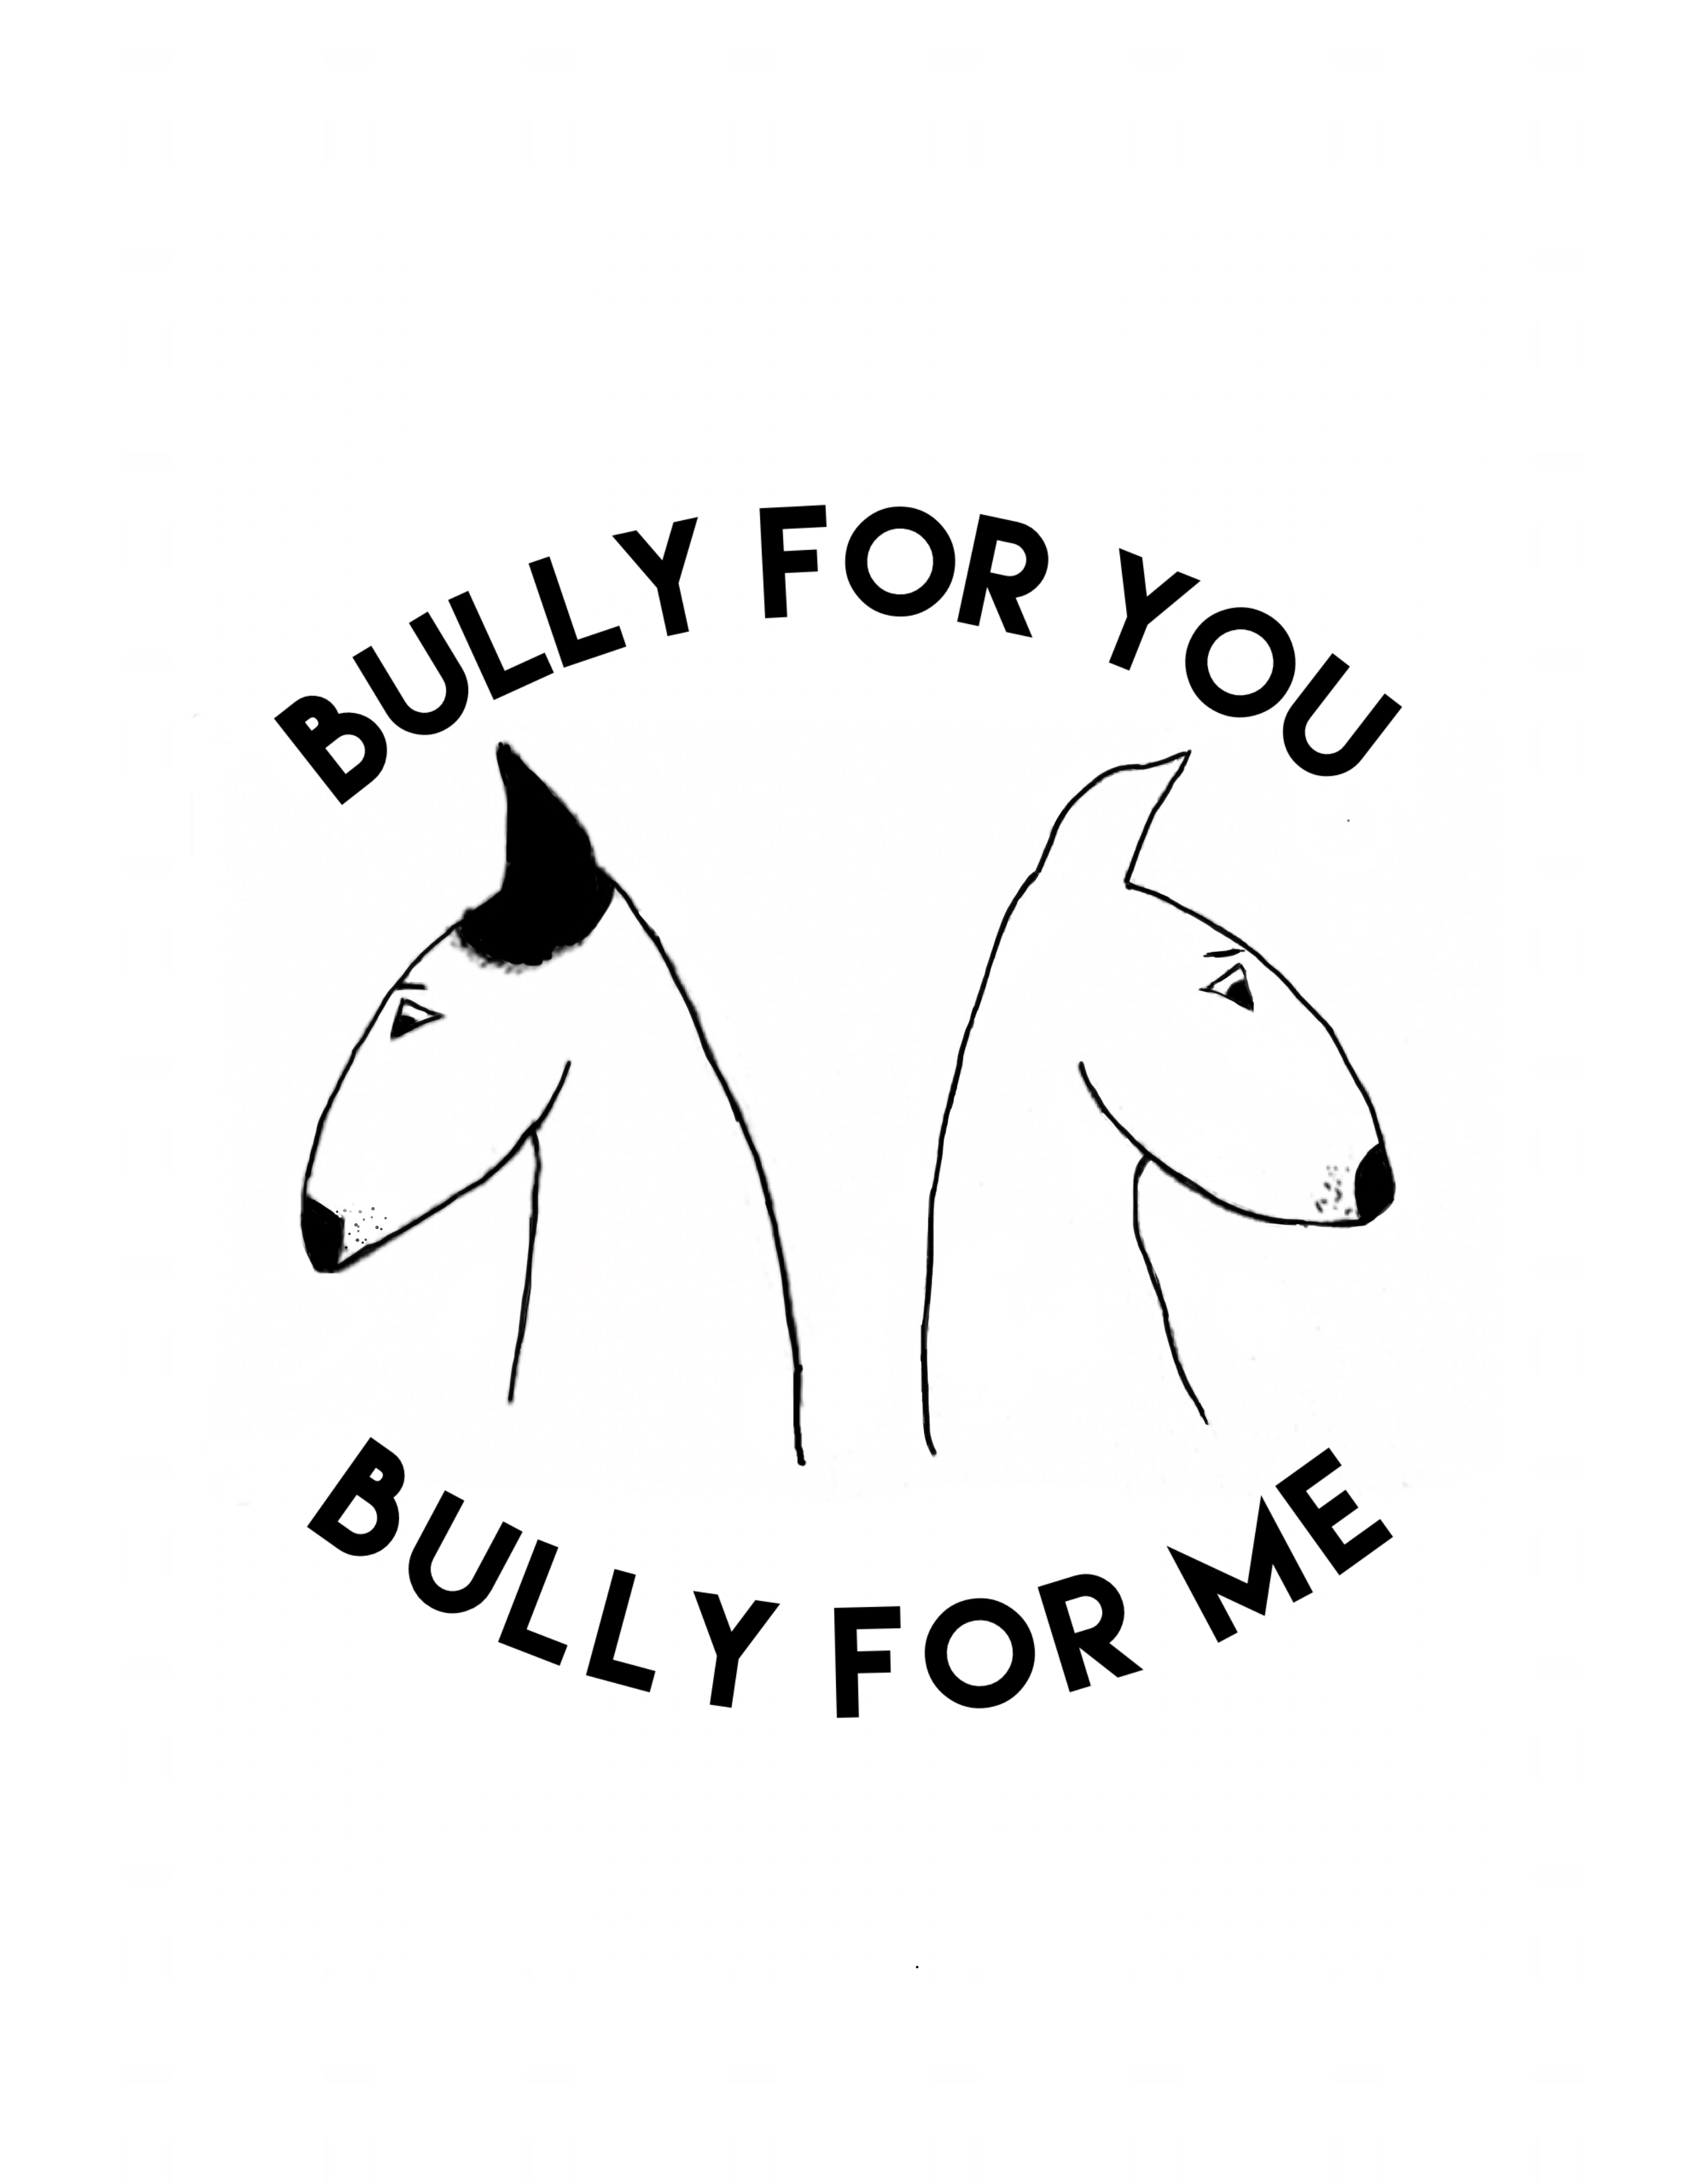 Bully for You, Bully for Me